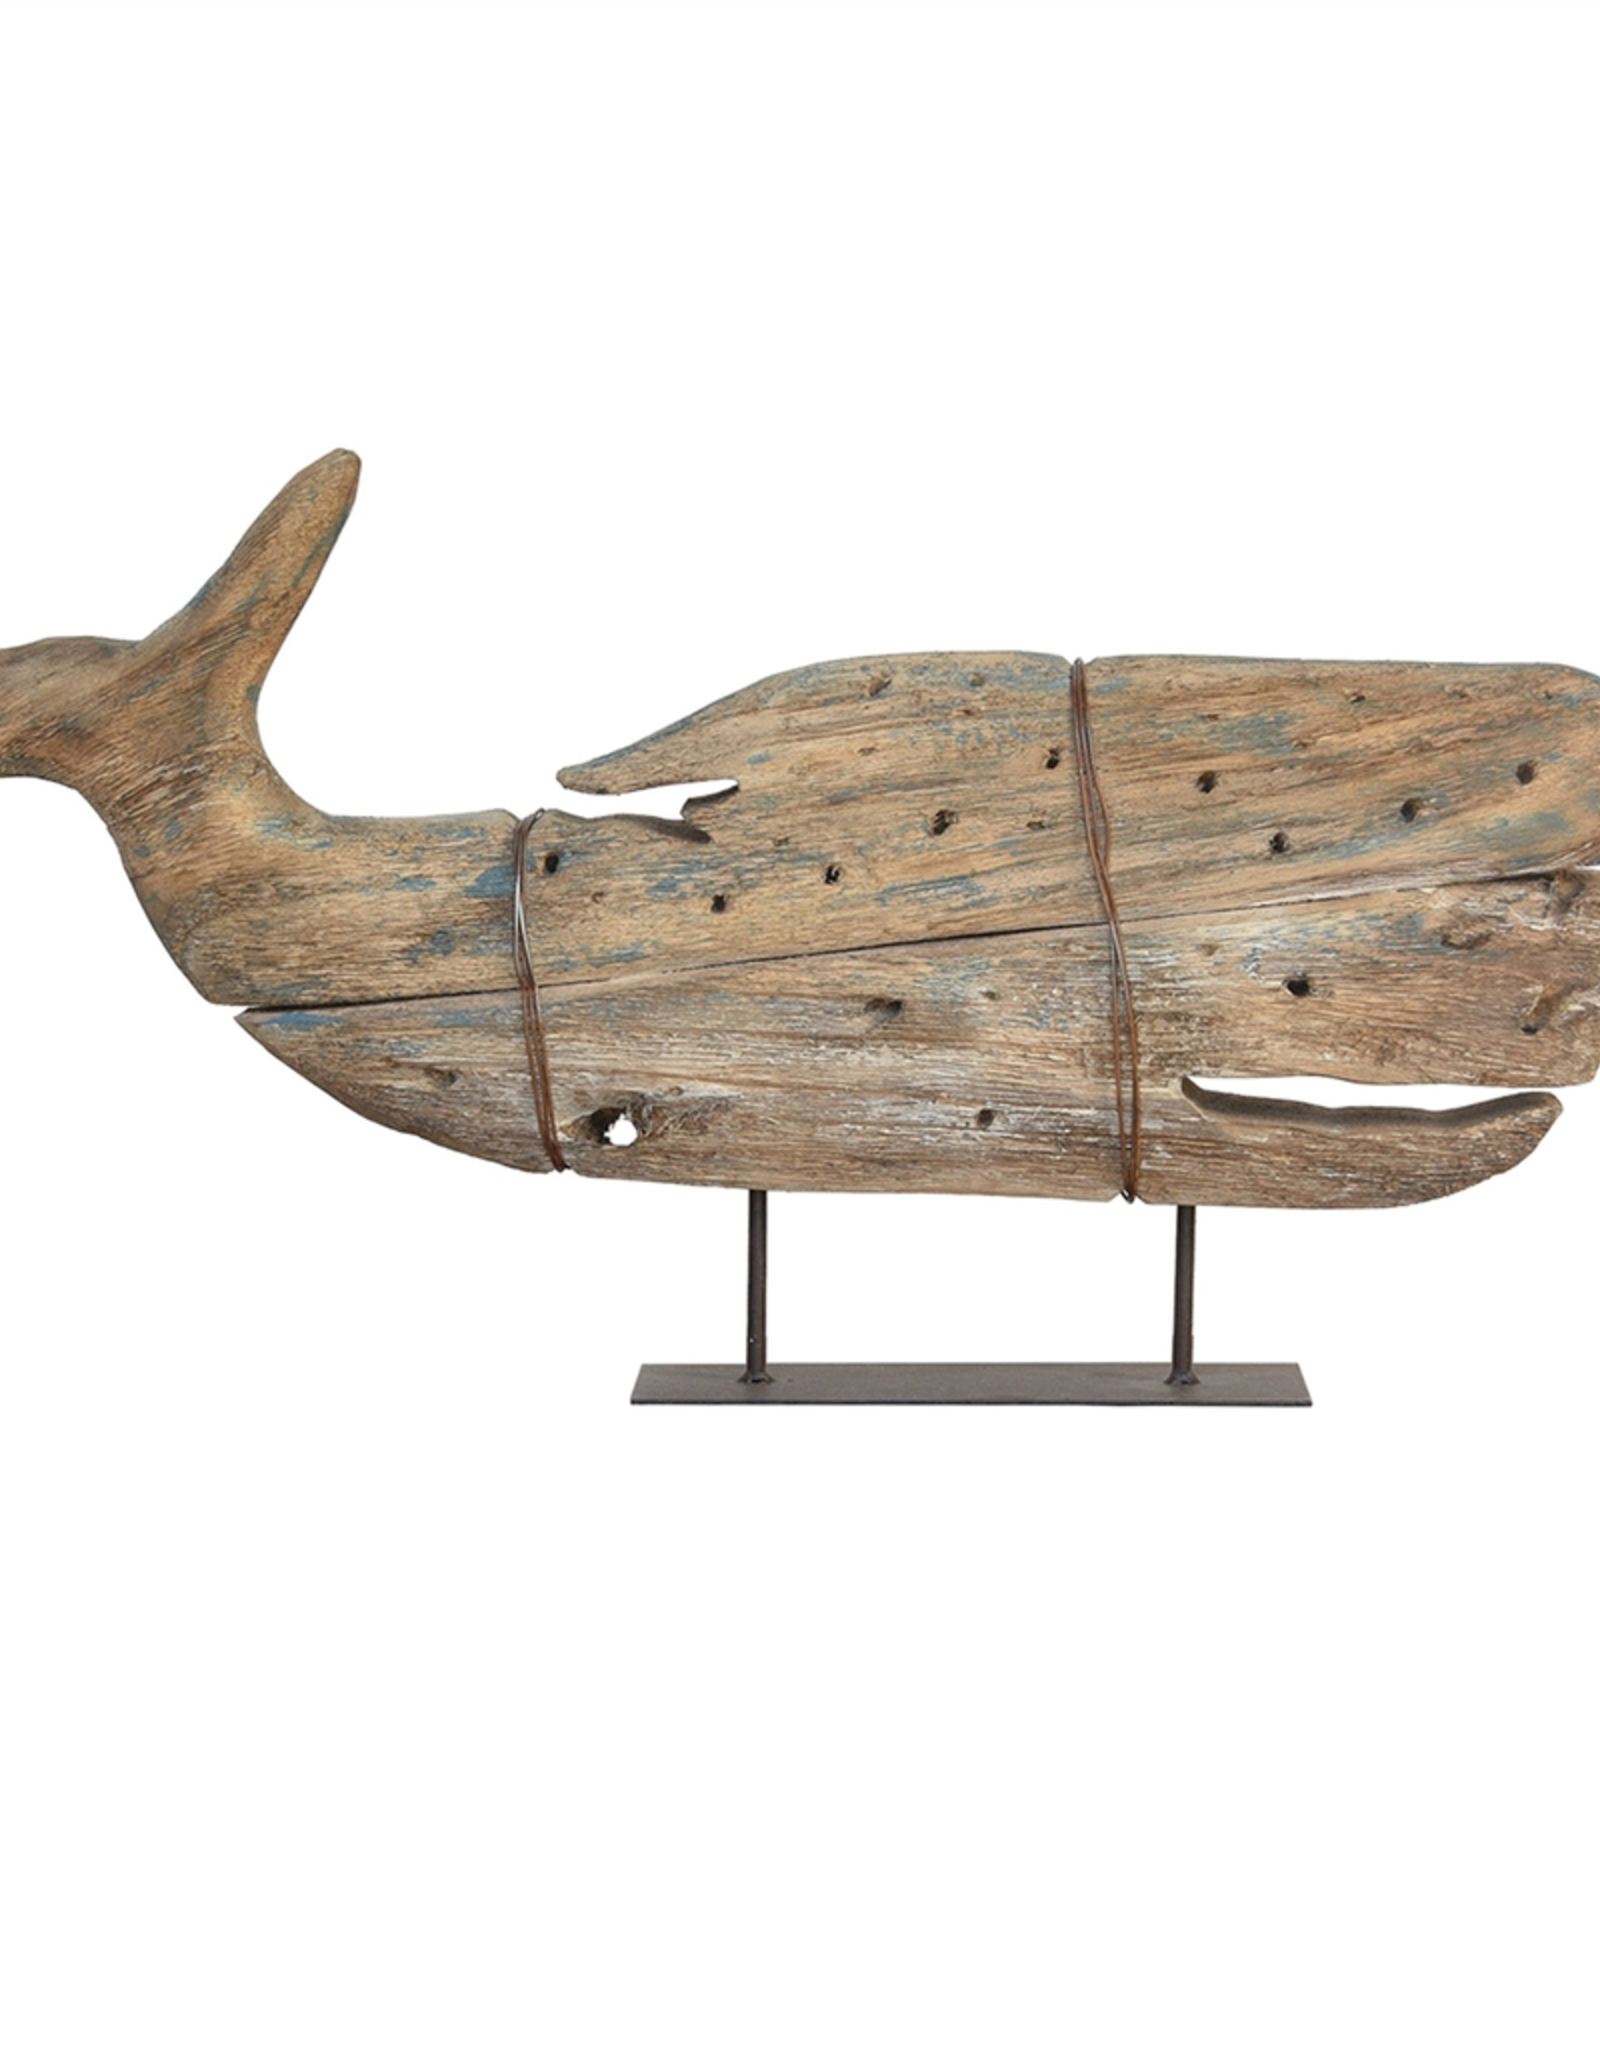 Kelso Wood Sperm Whale On Stand